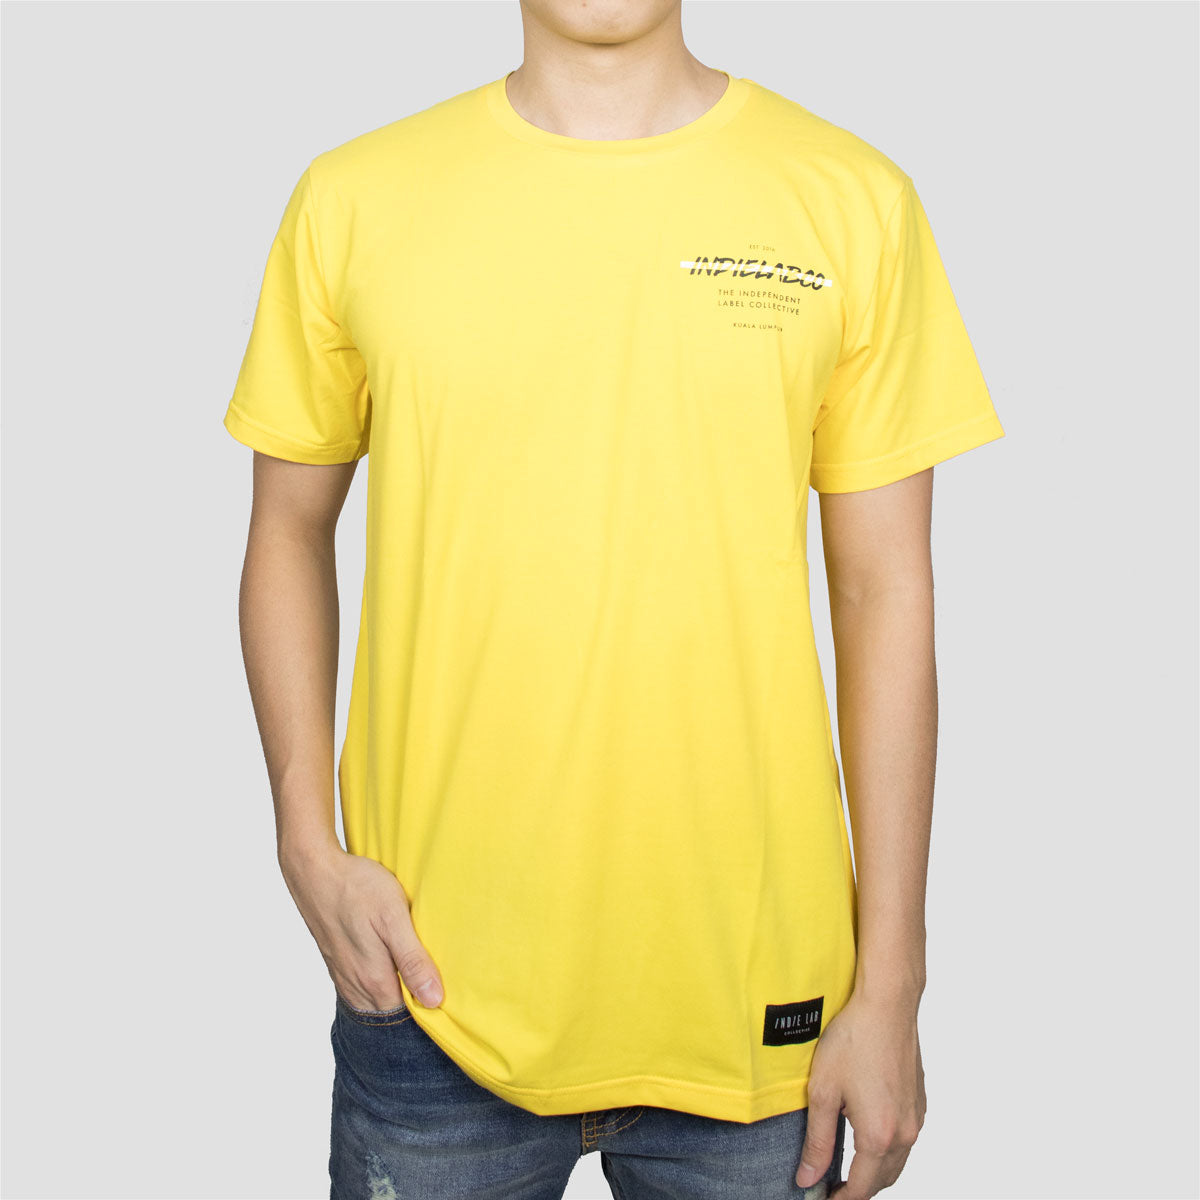 INDIELABCO AW18 BASIC T-SHIRT (YELLOW)